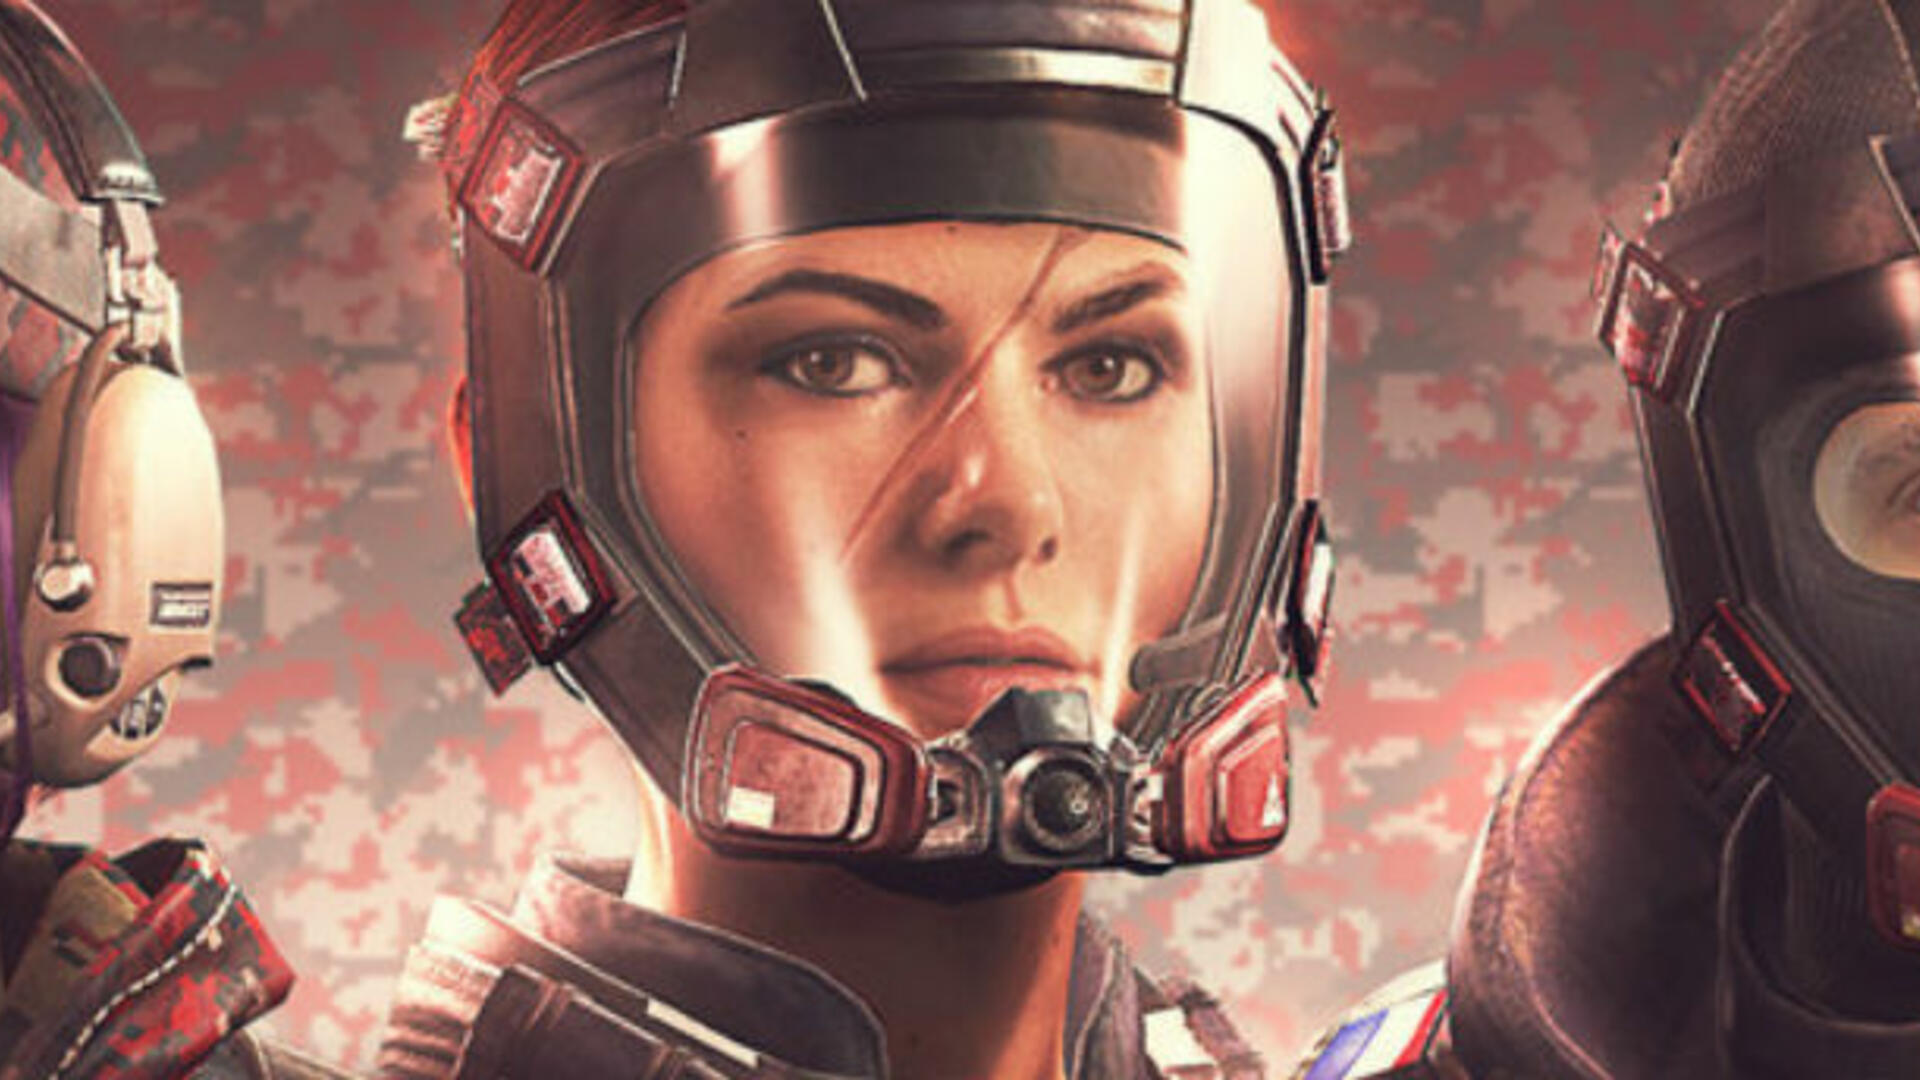 Rainbow Six Siege Switching to Seasonal Skins Much to Players' Chagrin